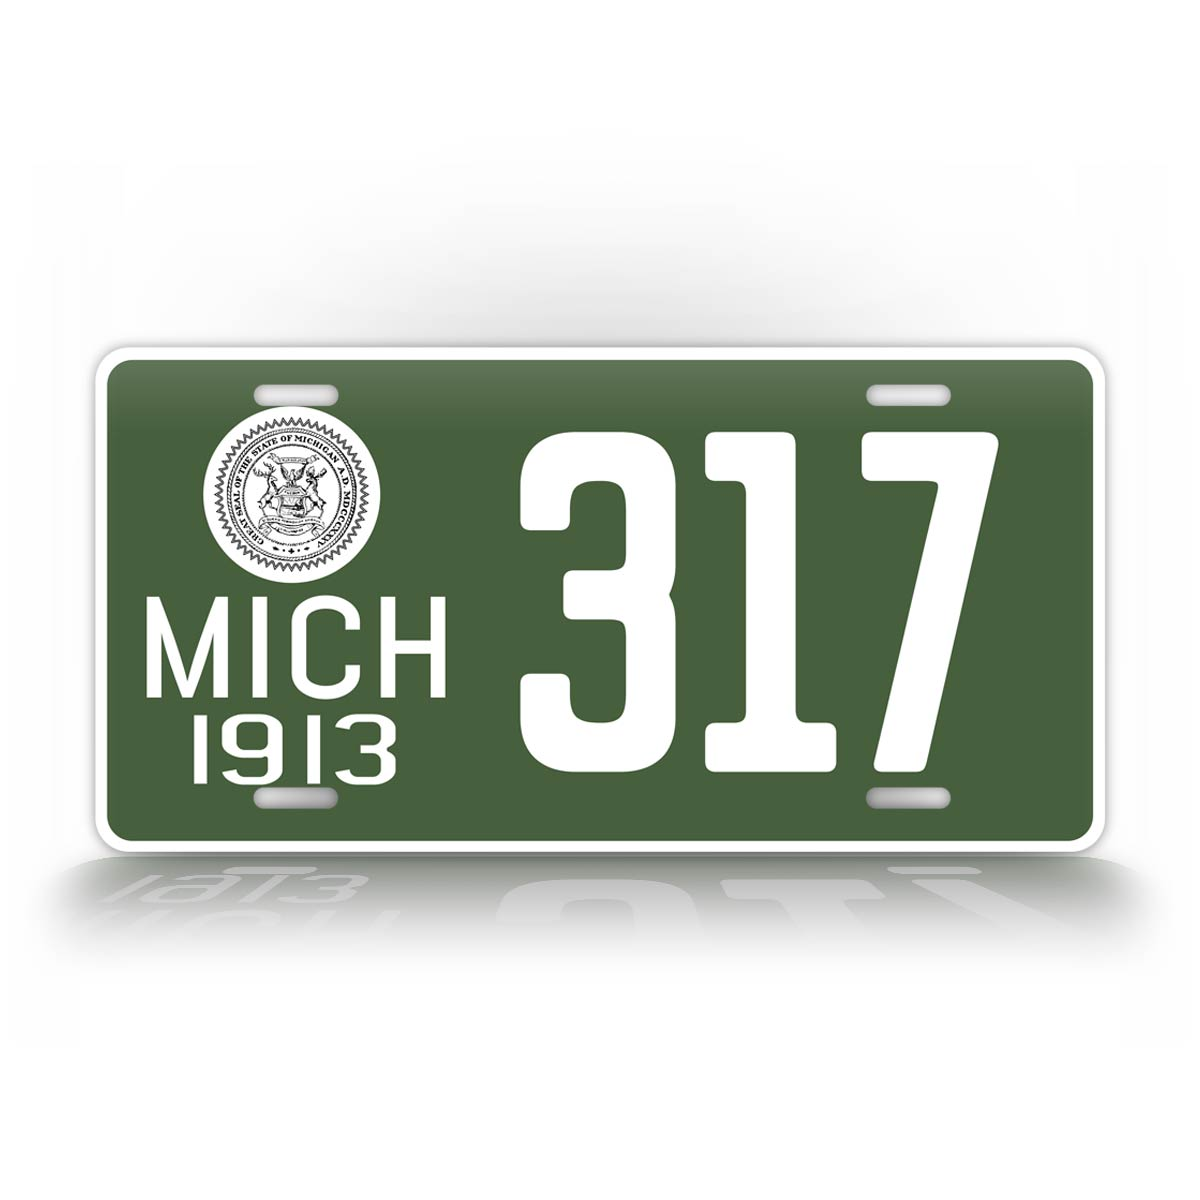 Personalized Green Michigan 1913 Any Text Auto Tag